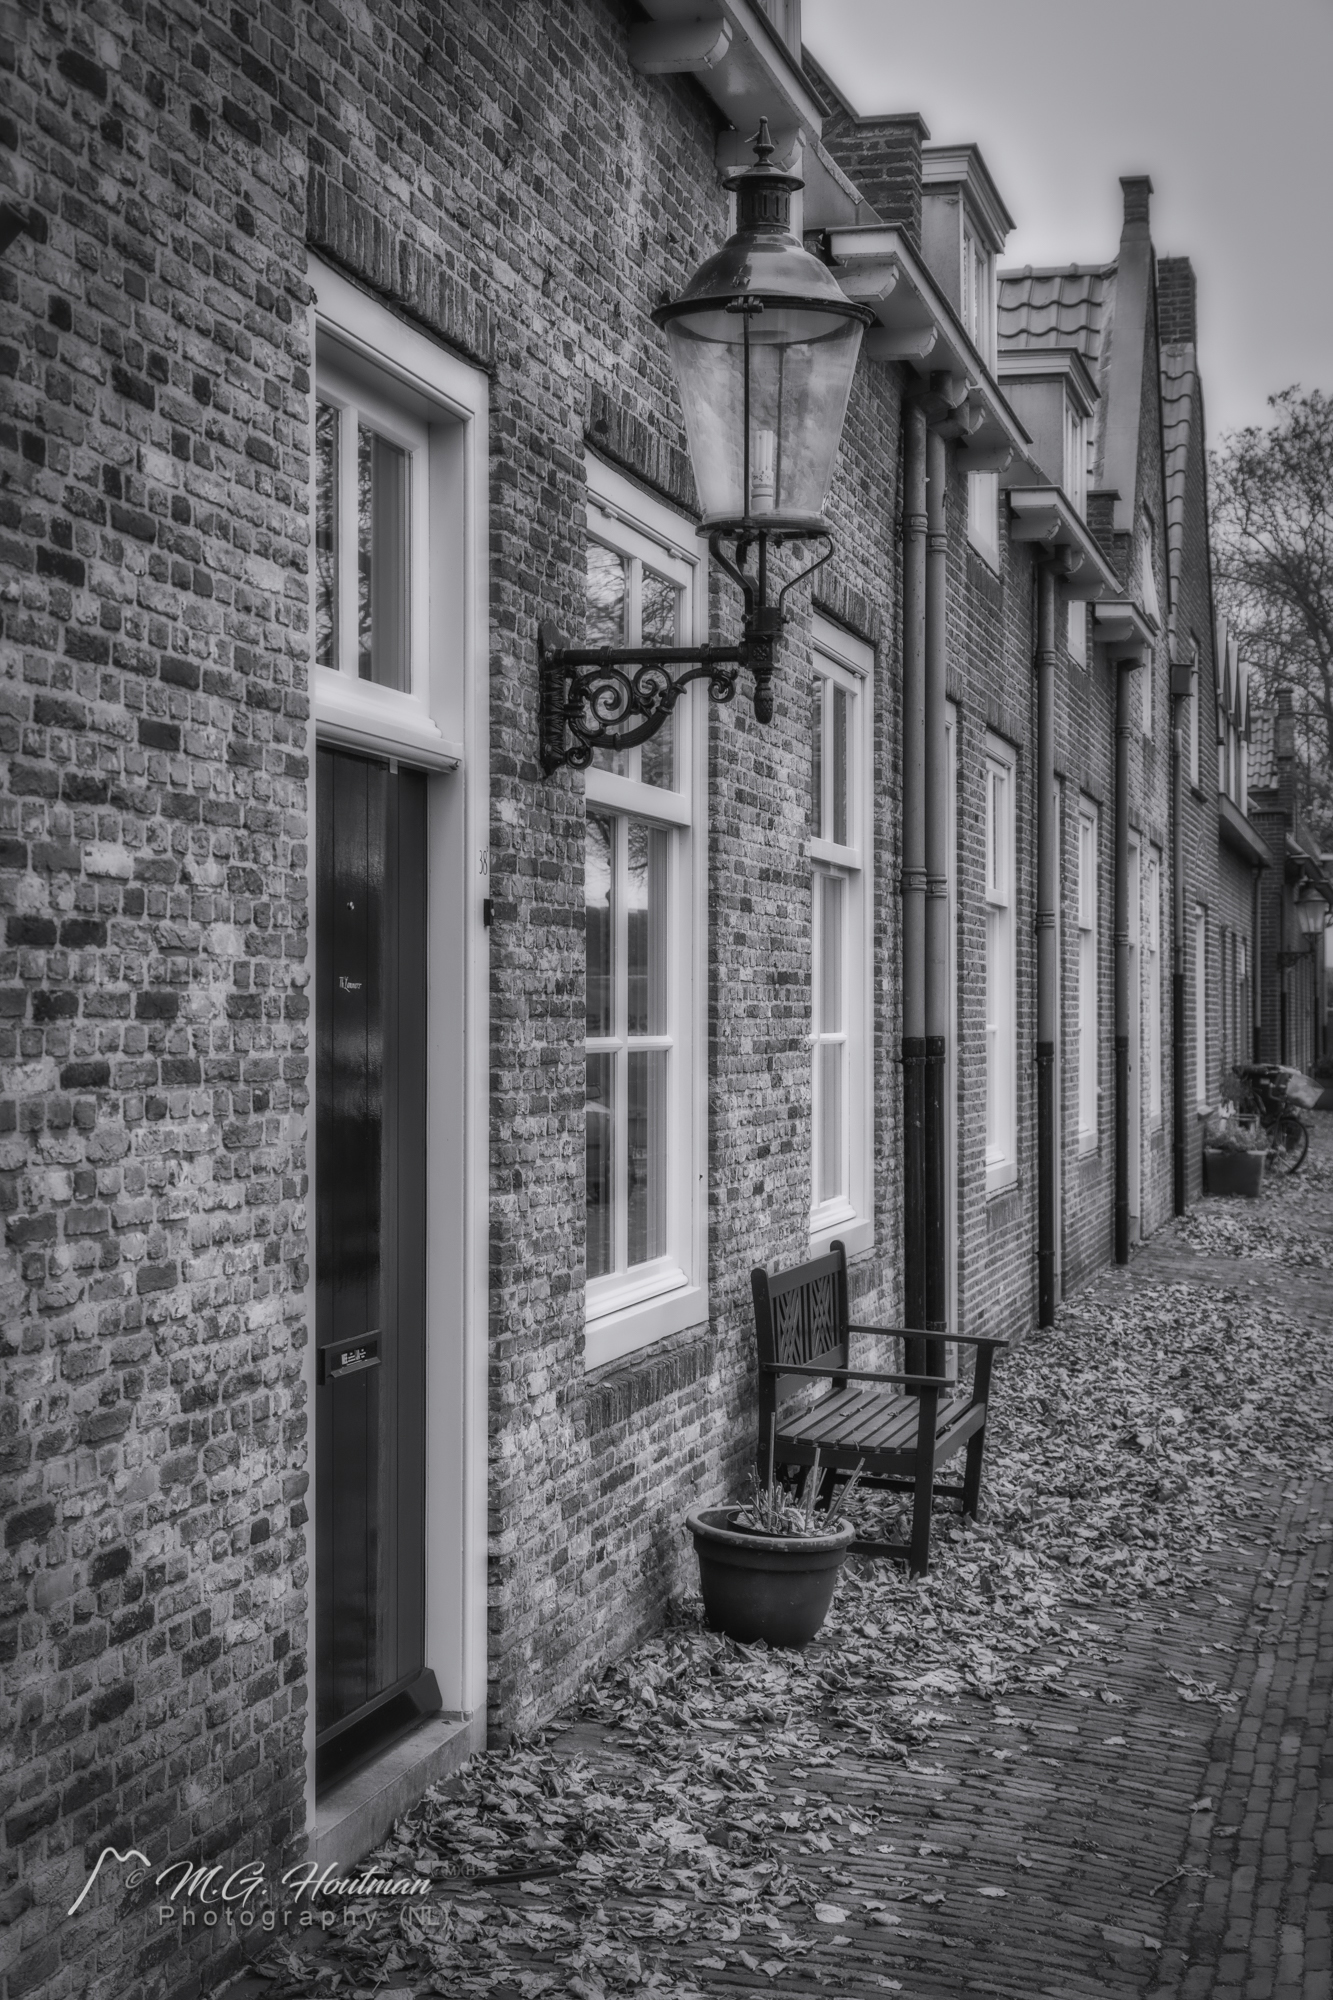 In an old Dutch town